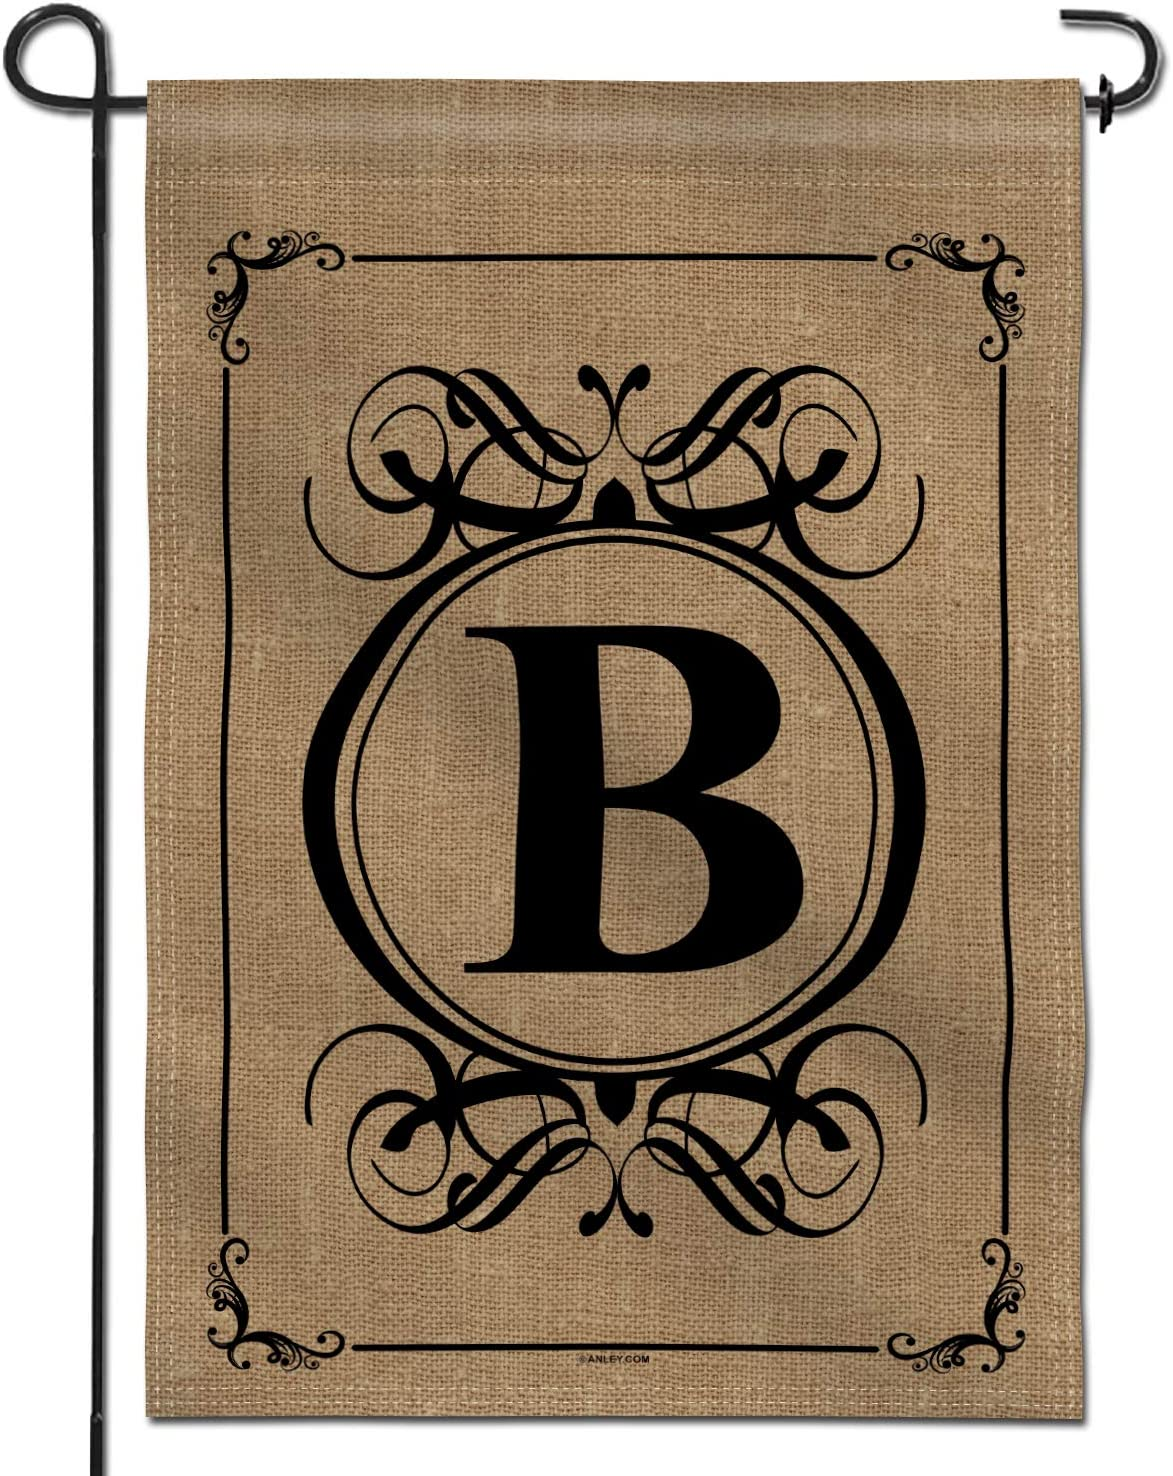 Anley Classic Monogram Letter B Garden Flag, Double Sided Family Last Name Initial Yard Flags - Personalized Welcome Home Decor - Weather Resistant & Double Stitched - 18 x 12.5 Inch